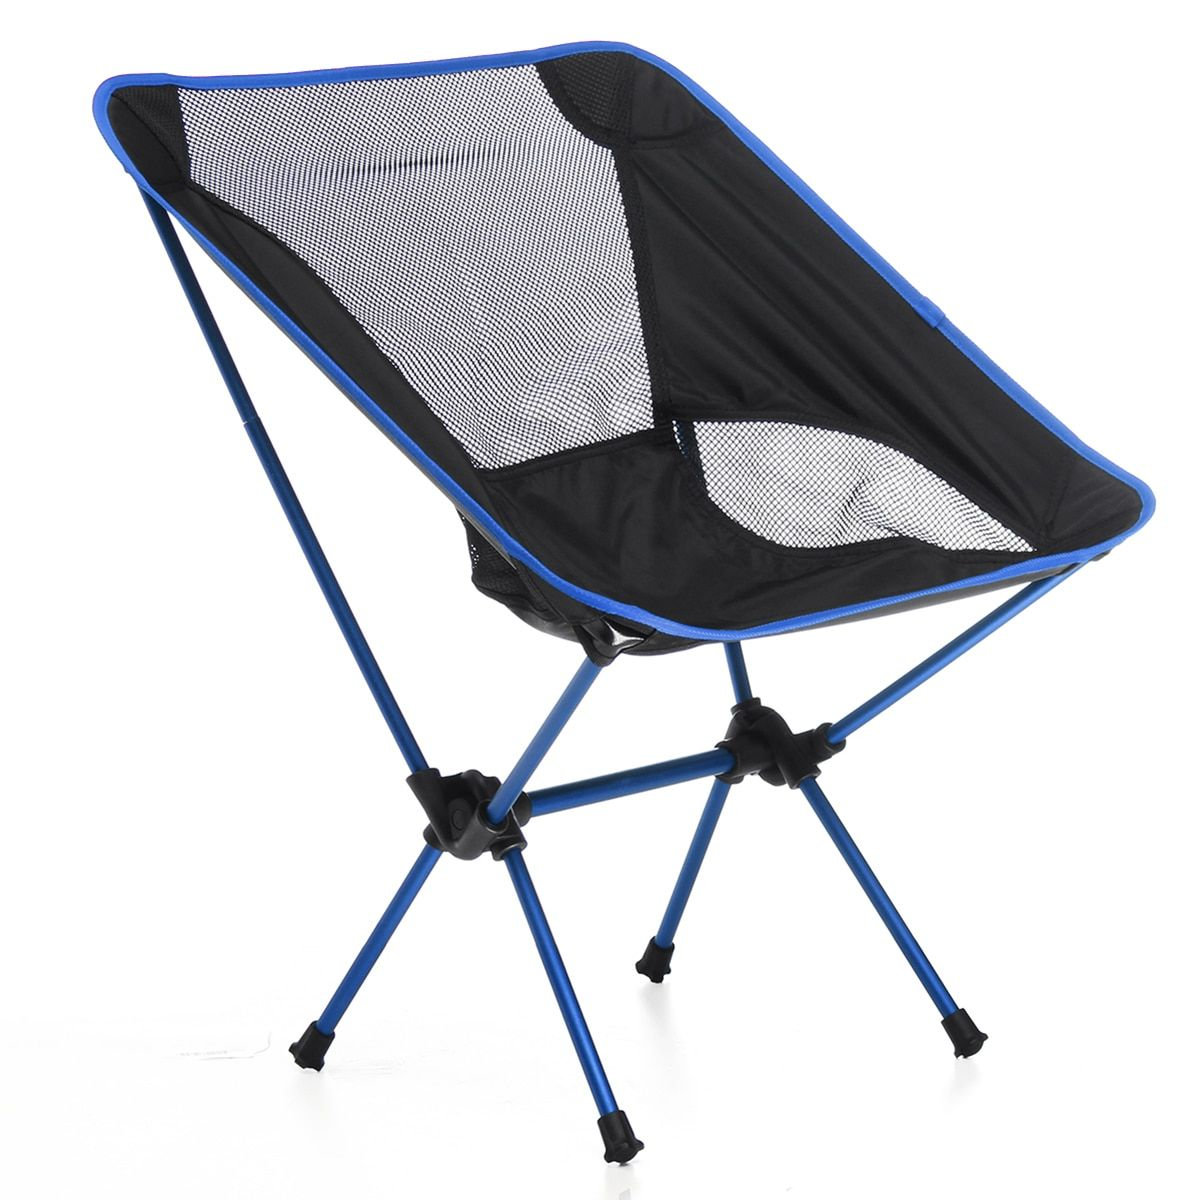 Sold 5215671602 Items Portable Lightweight Folding Camping